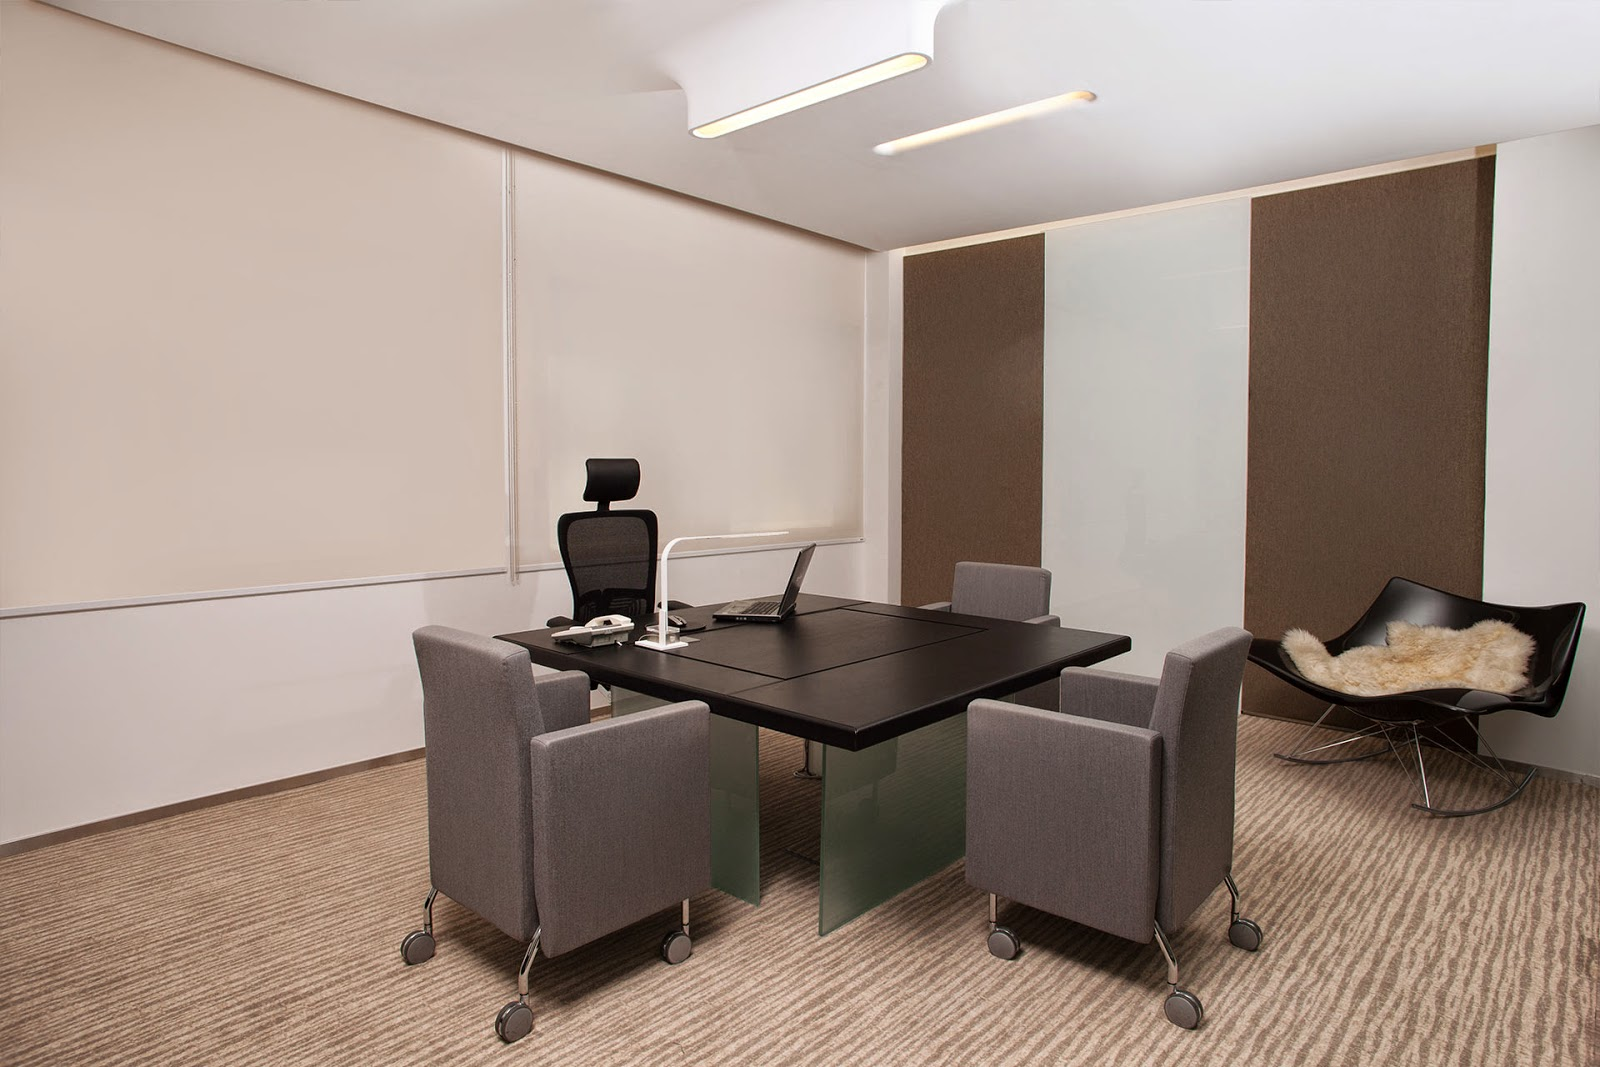 Office furniture abu dhabi inspirational Marlin home furniture dubai